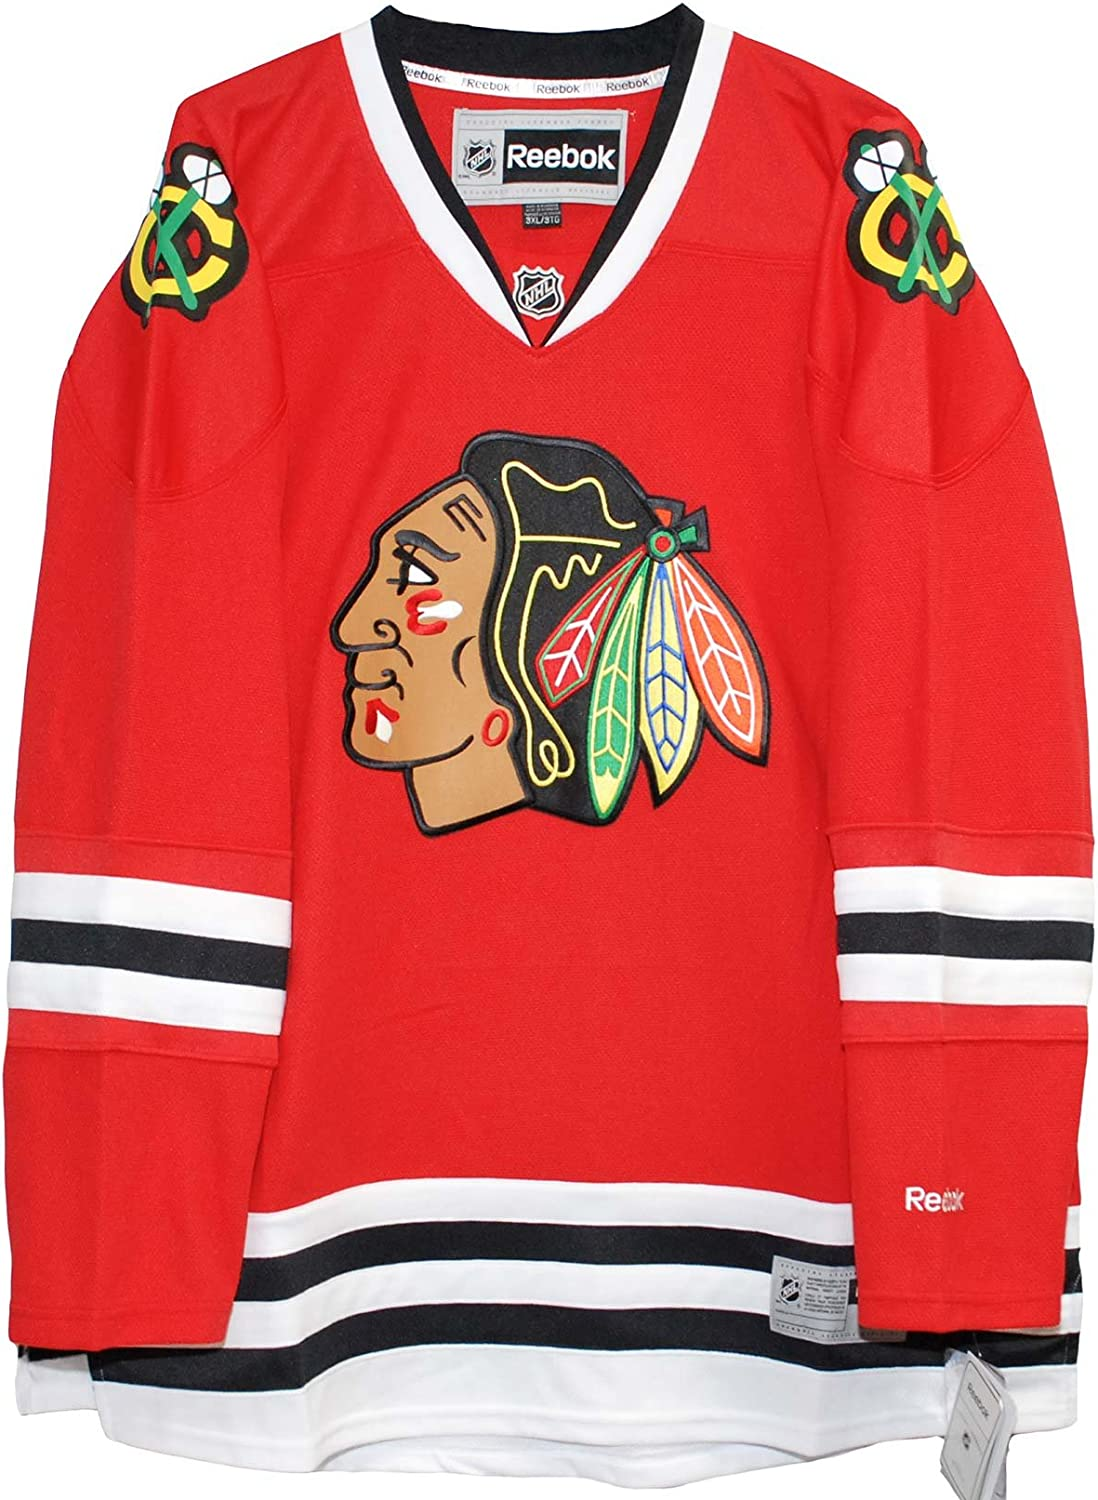 official blackhawks jersey